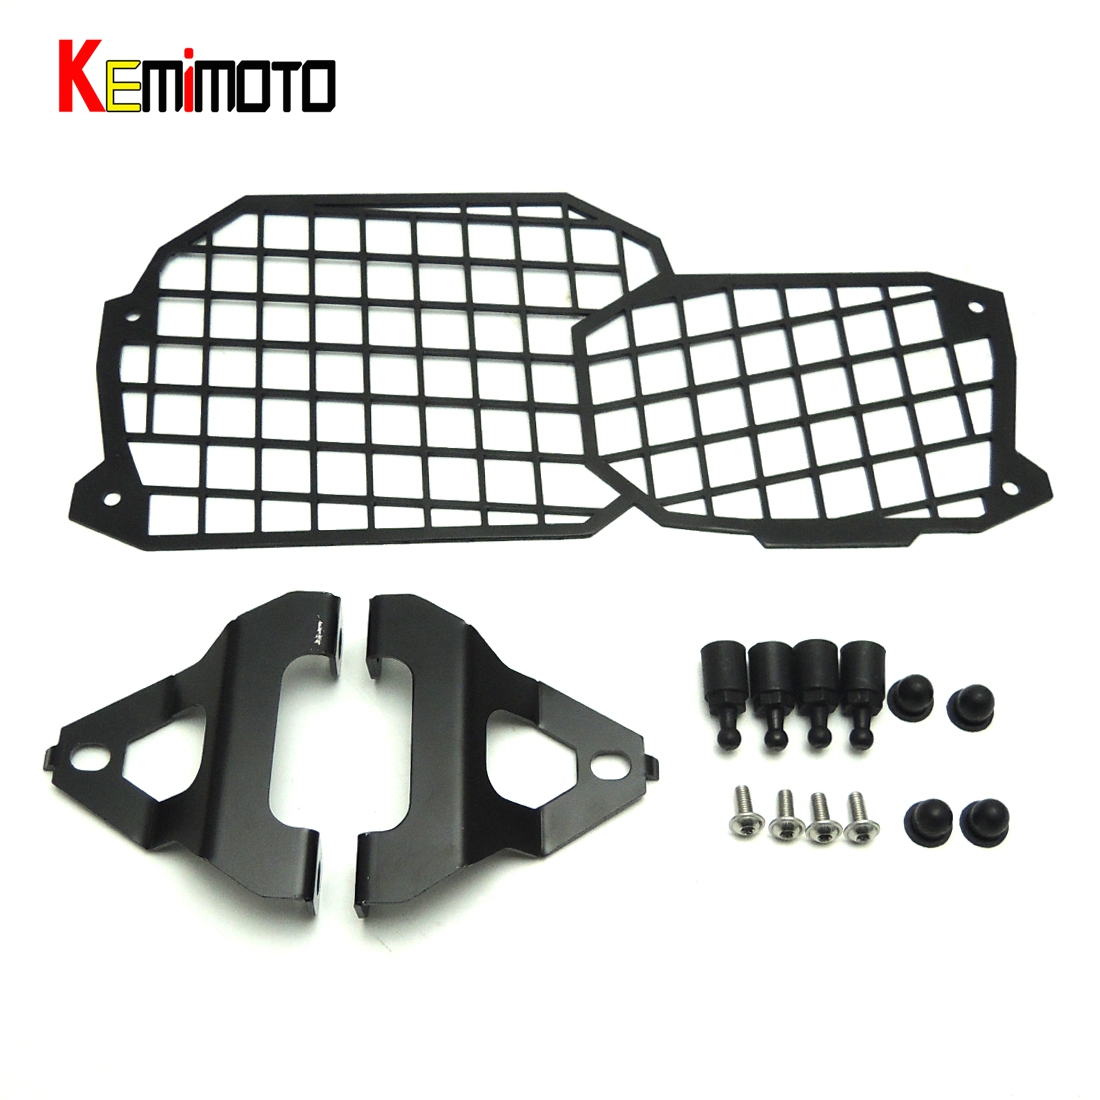 ФОТО For BMW F700GS Quick Release Stainless Steel Headlight Guard Cover Protector for BMW F800GS ADV F700GS F650GS 2008 2009 Up